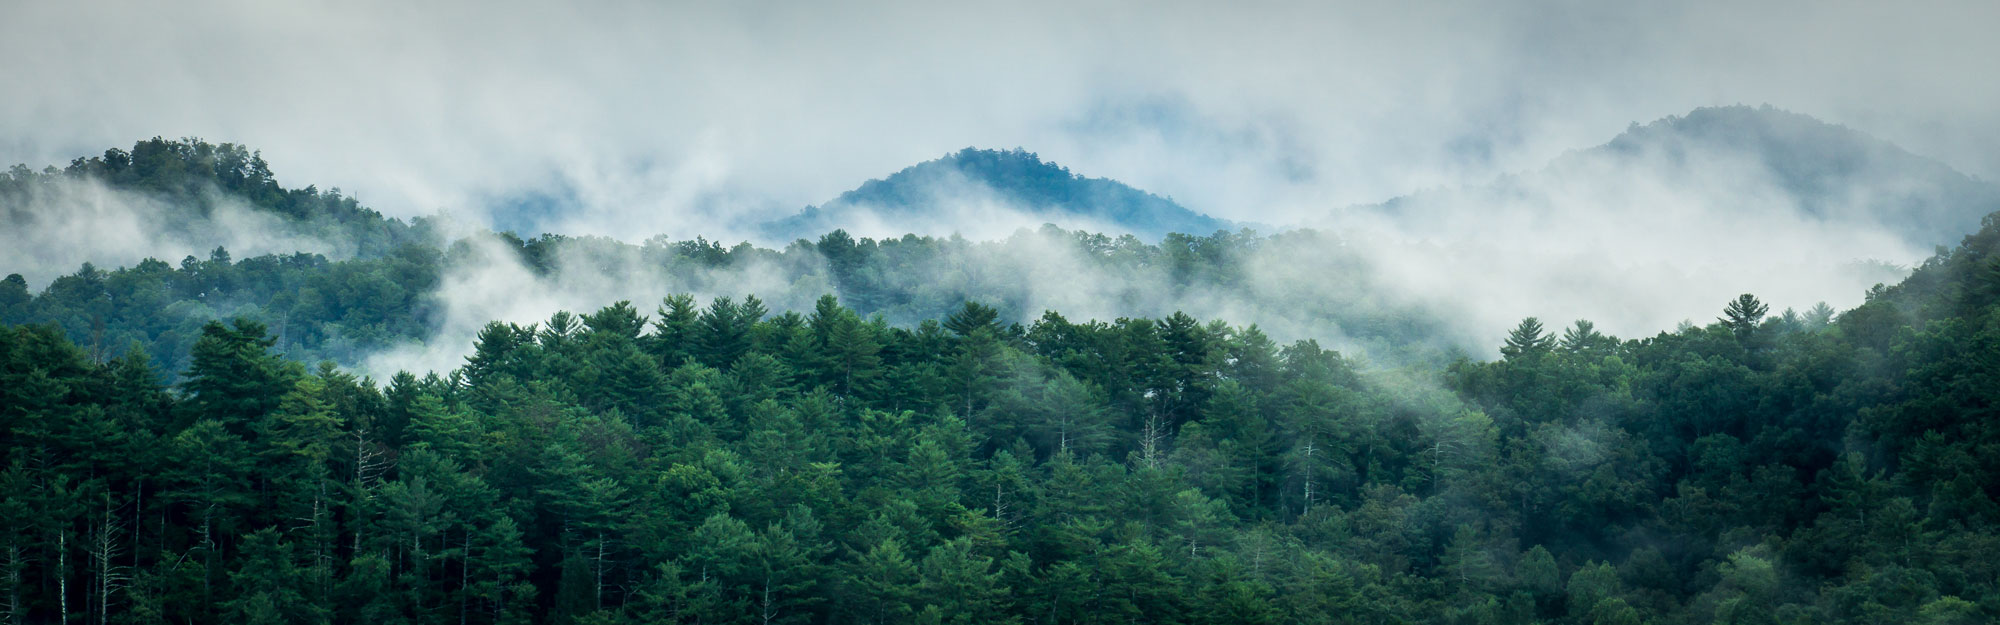 Smoky Mountains landscape photo by David Bryant